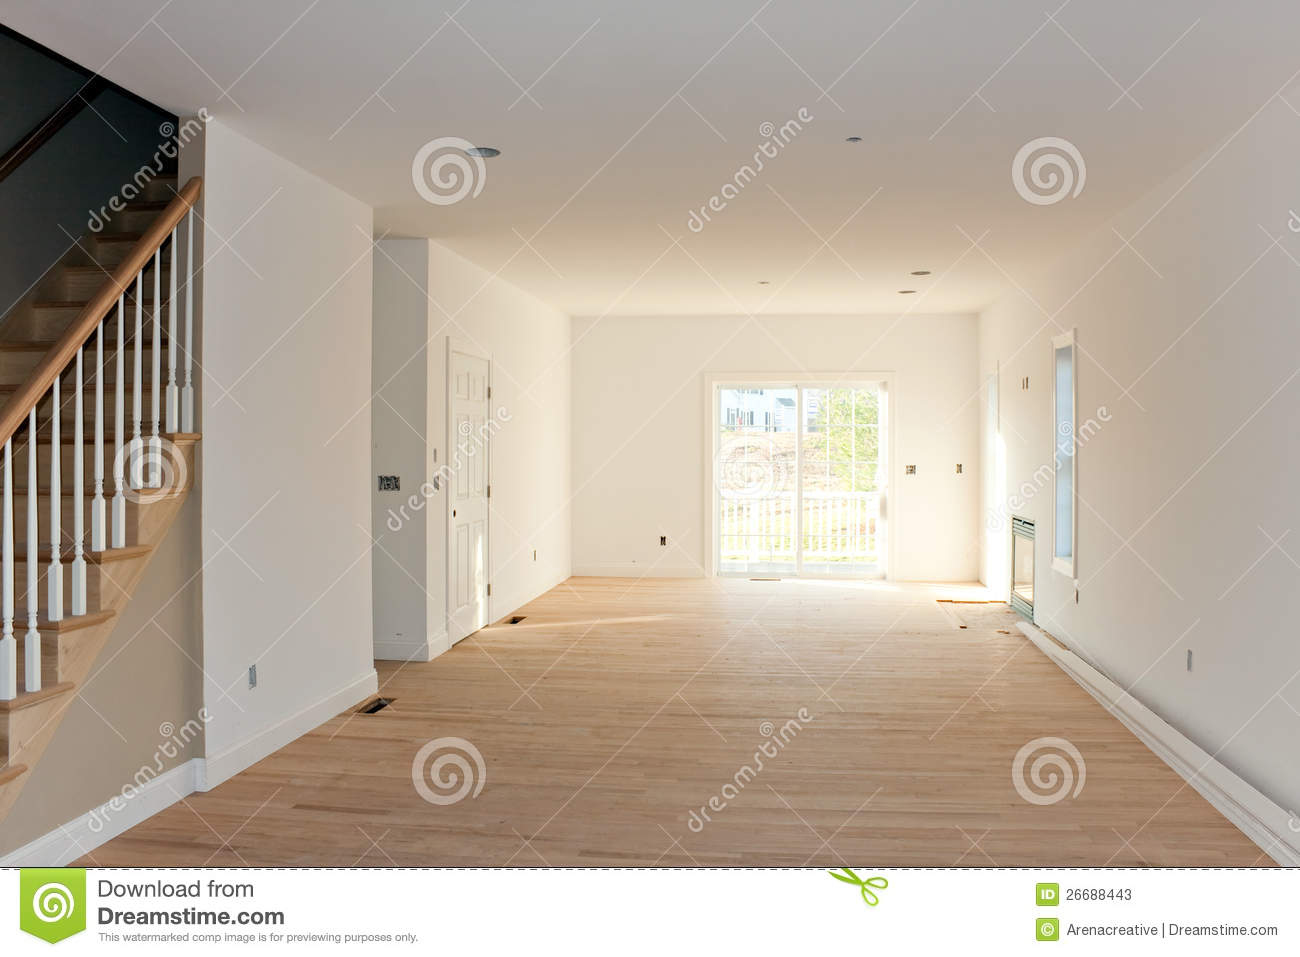 kitchen electrical outlets storage unit empty unfinished home interior stock photos - image: 26688443